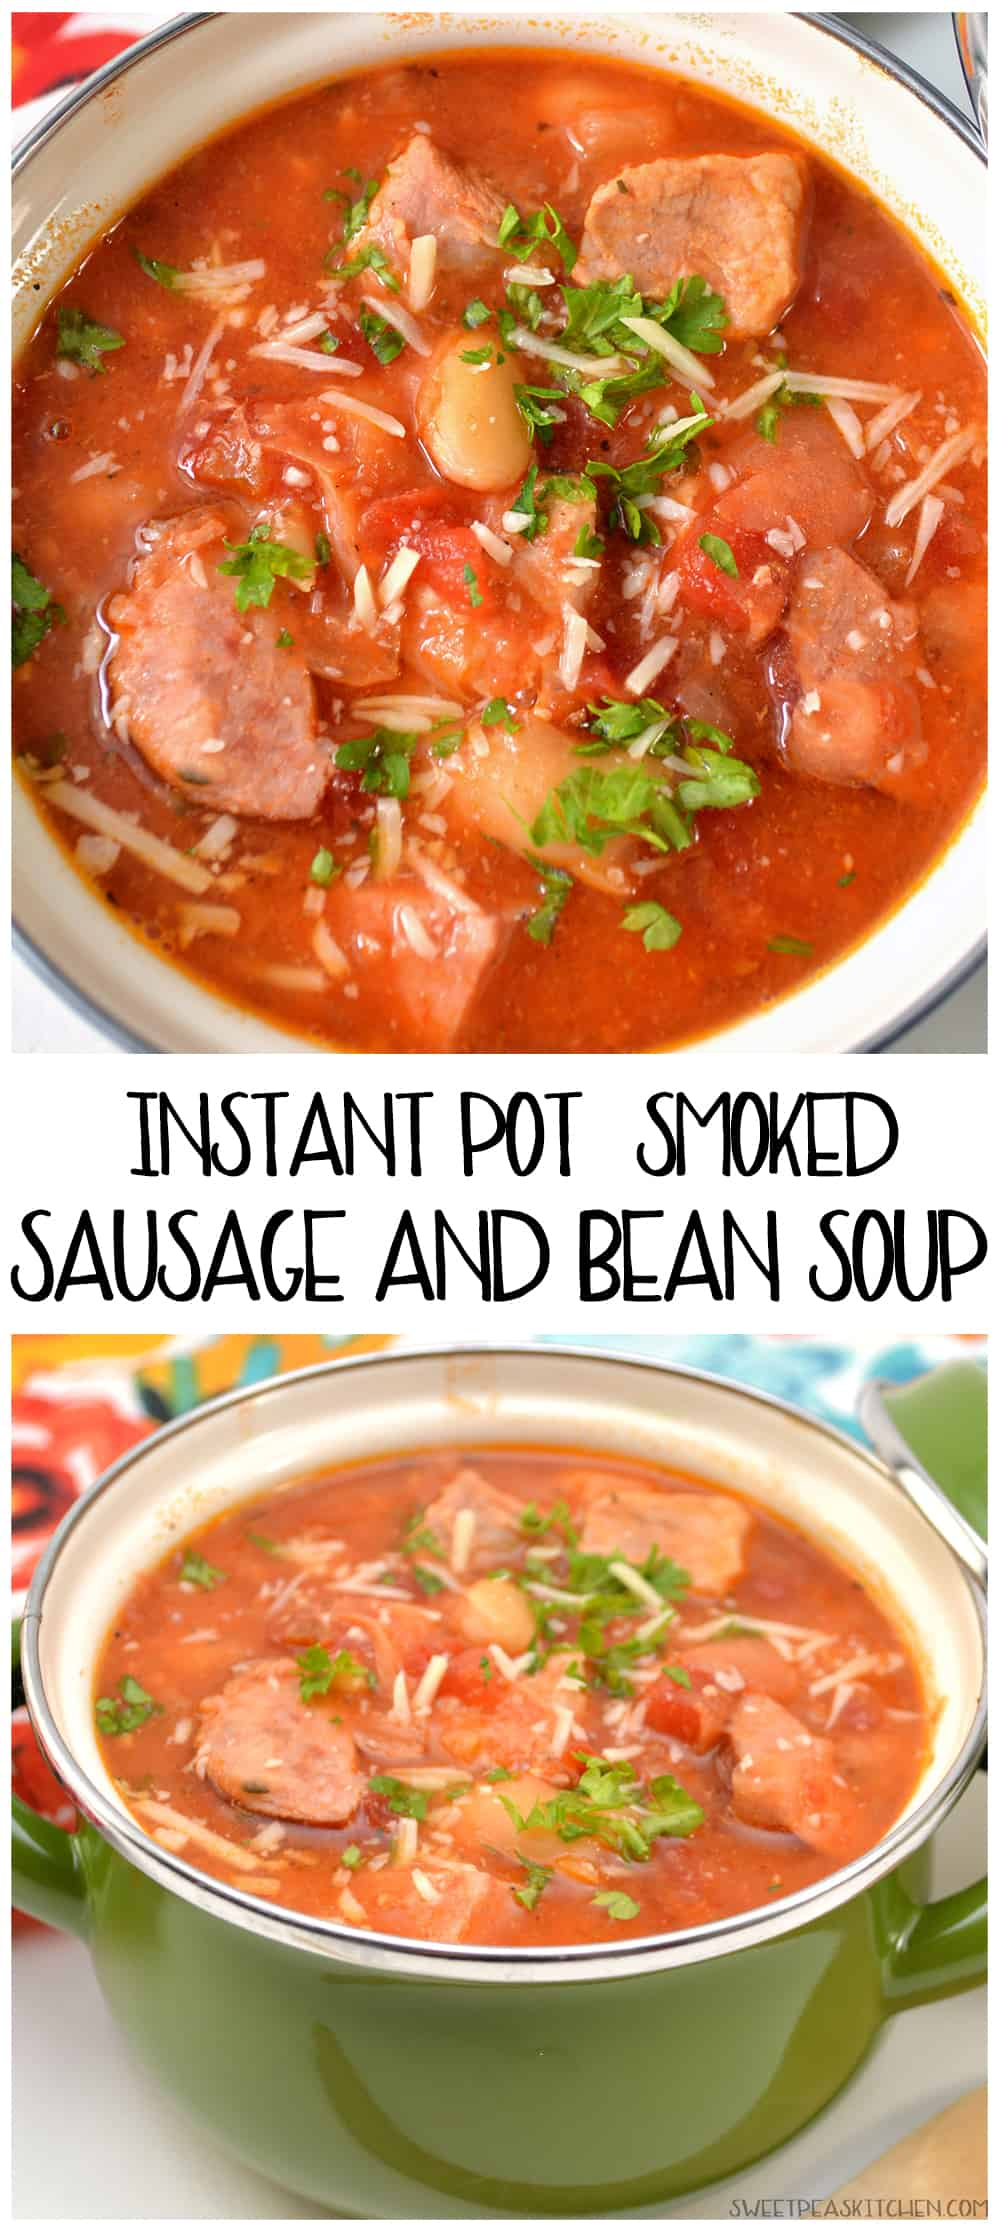 Instant Pot Smoked Sausage And Bean Soup